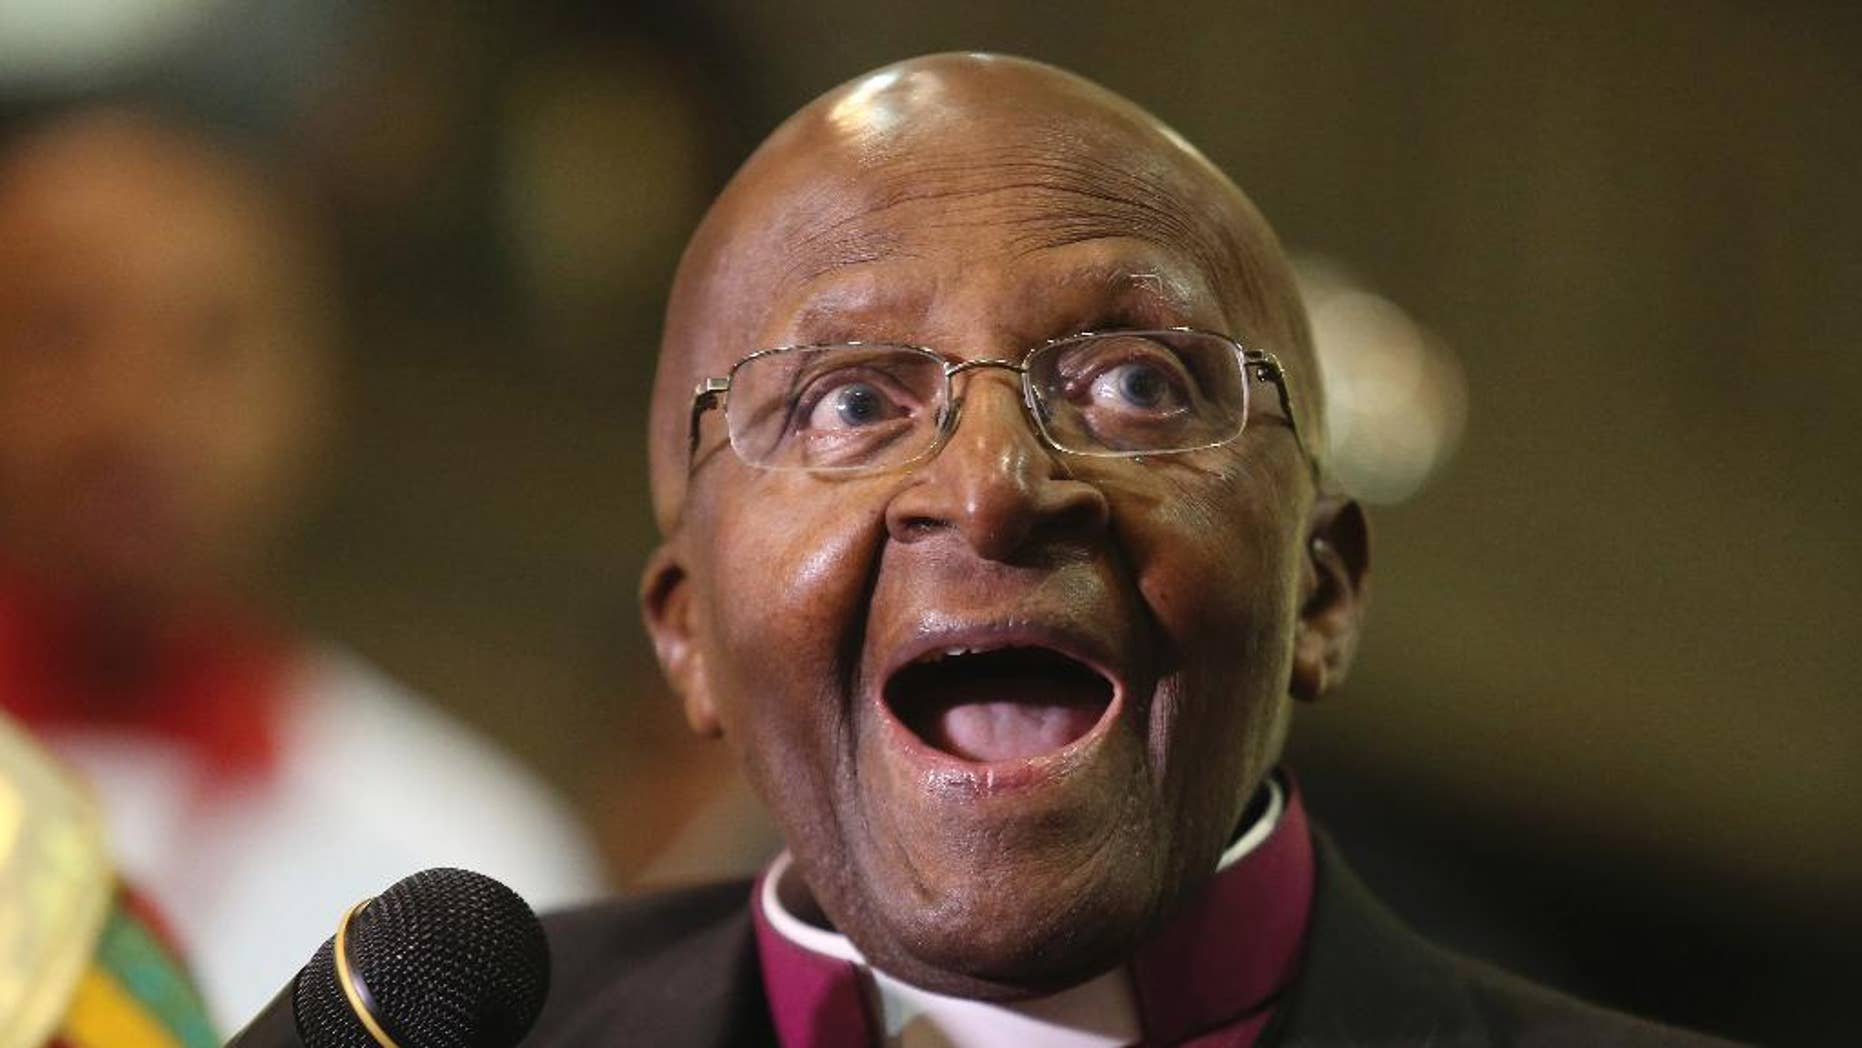 FILE - In this July 2016 file photo Anglican Archbishop Emeritus Desmond Tutu takes part in a Mass to celebrate four decades of episcopal ministry at a special thanksgiving Mass at St Mary's Cathedral in Johannesburg. Nobel laureate Desmond Tutu has left a South African hospital where he was treated for the last three weeks. Tutu's family said the 84-year-old retired archbishop had been admitted to the hospital in Cape Town 'to bring a recurring infection under control.' (AP Photo/Denis Farrell-File